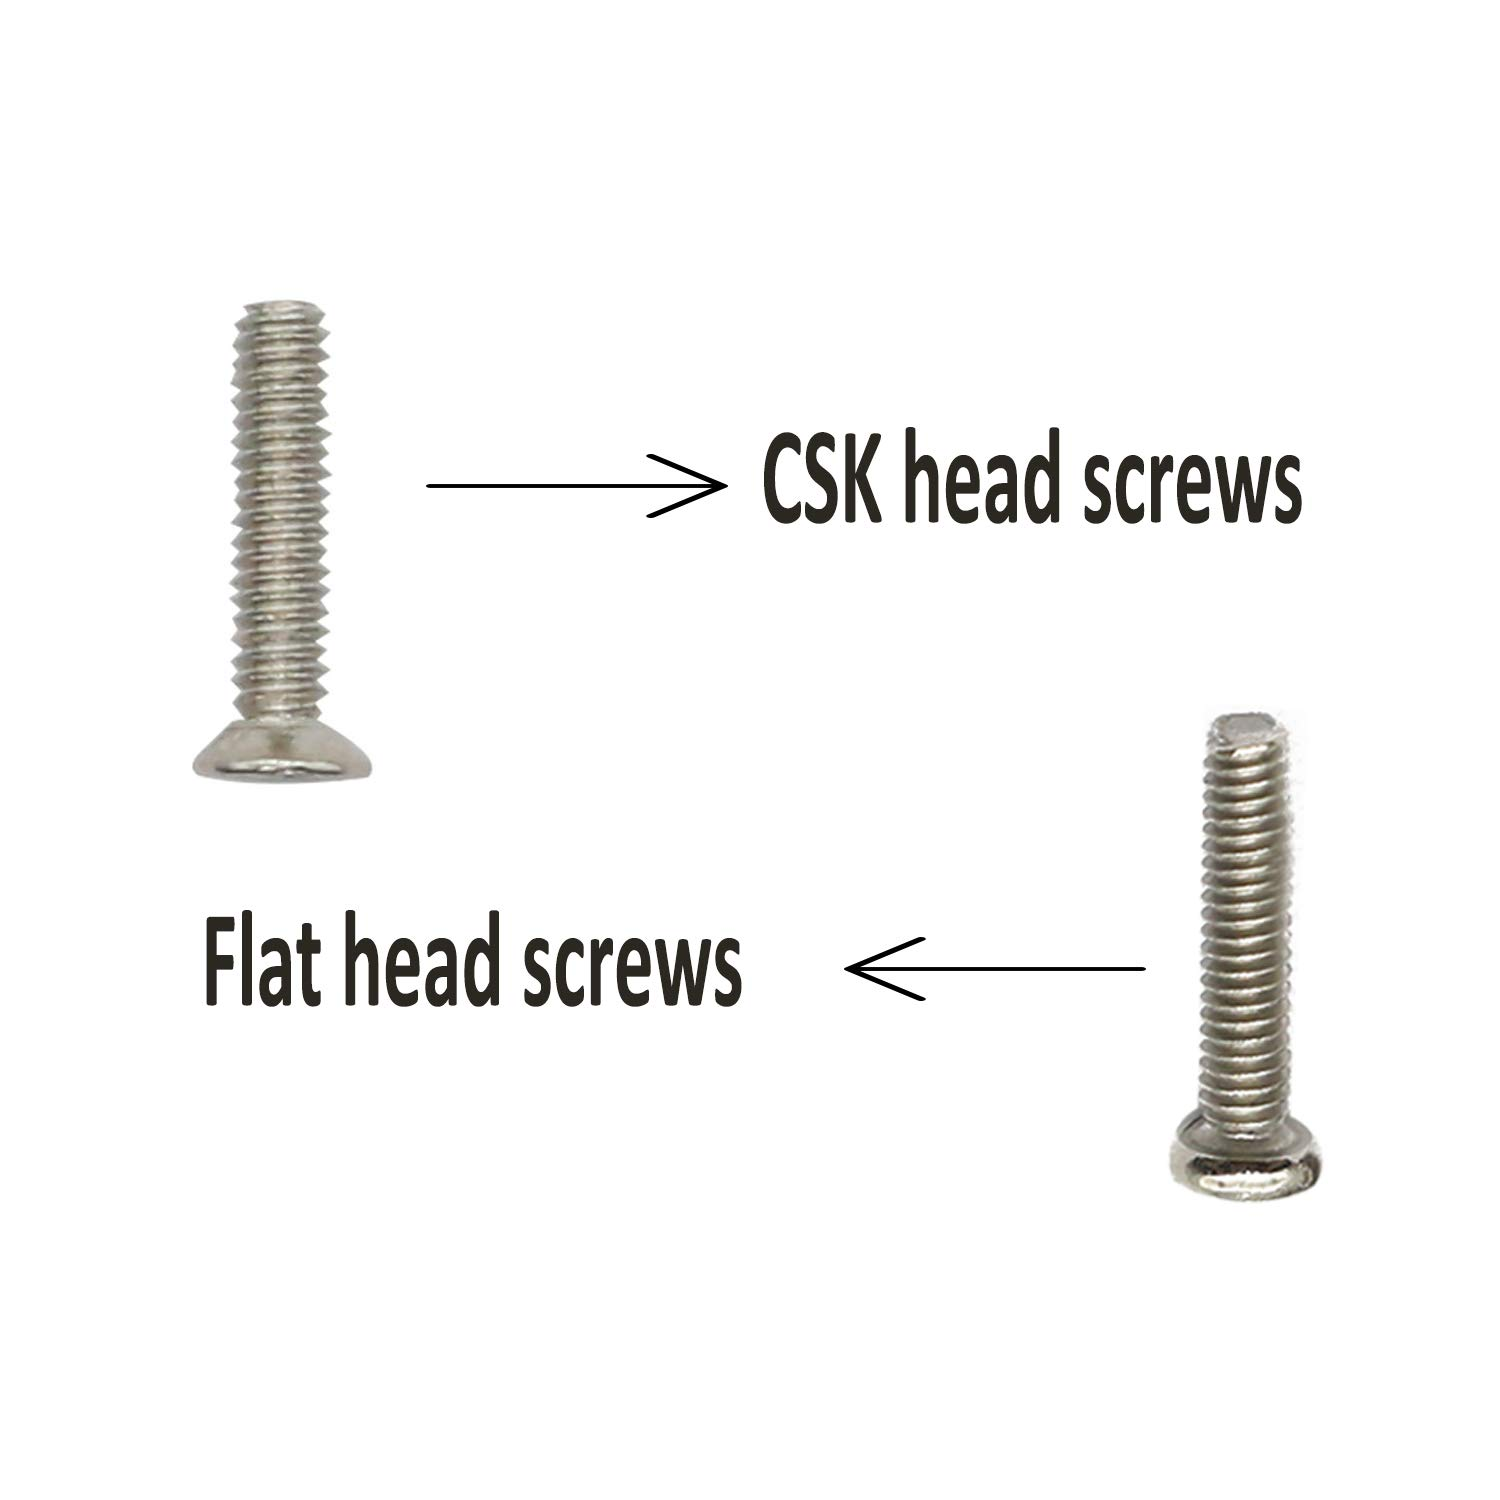 Small Screws Assortment Kit Hotetey 18 Kinds M1.2 / M1.4 / M2.0 Tiny Micro Screws Set with Tweezers and Mini 3 in 1 Screwdriver Keychain for Glasses Watches, Silver